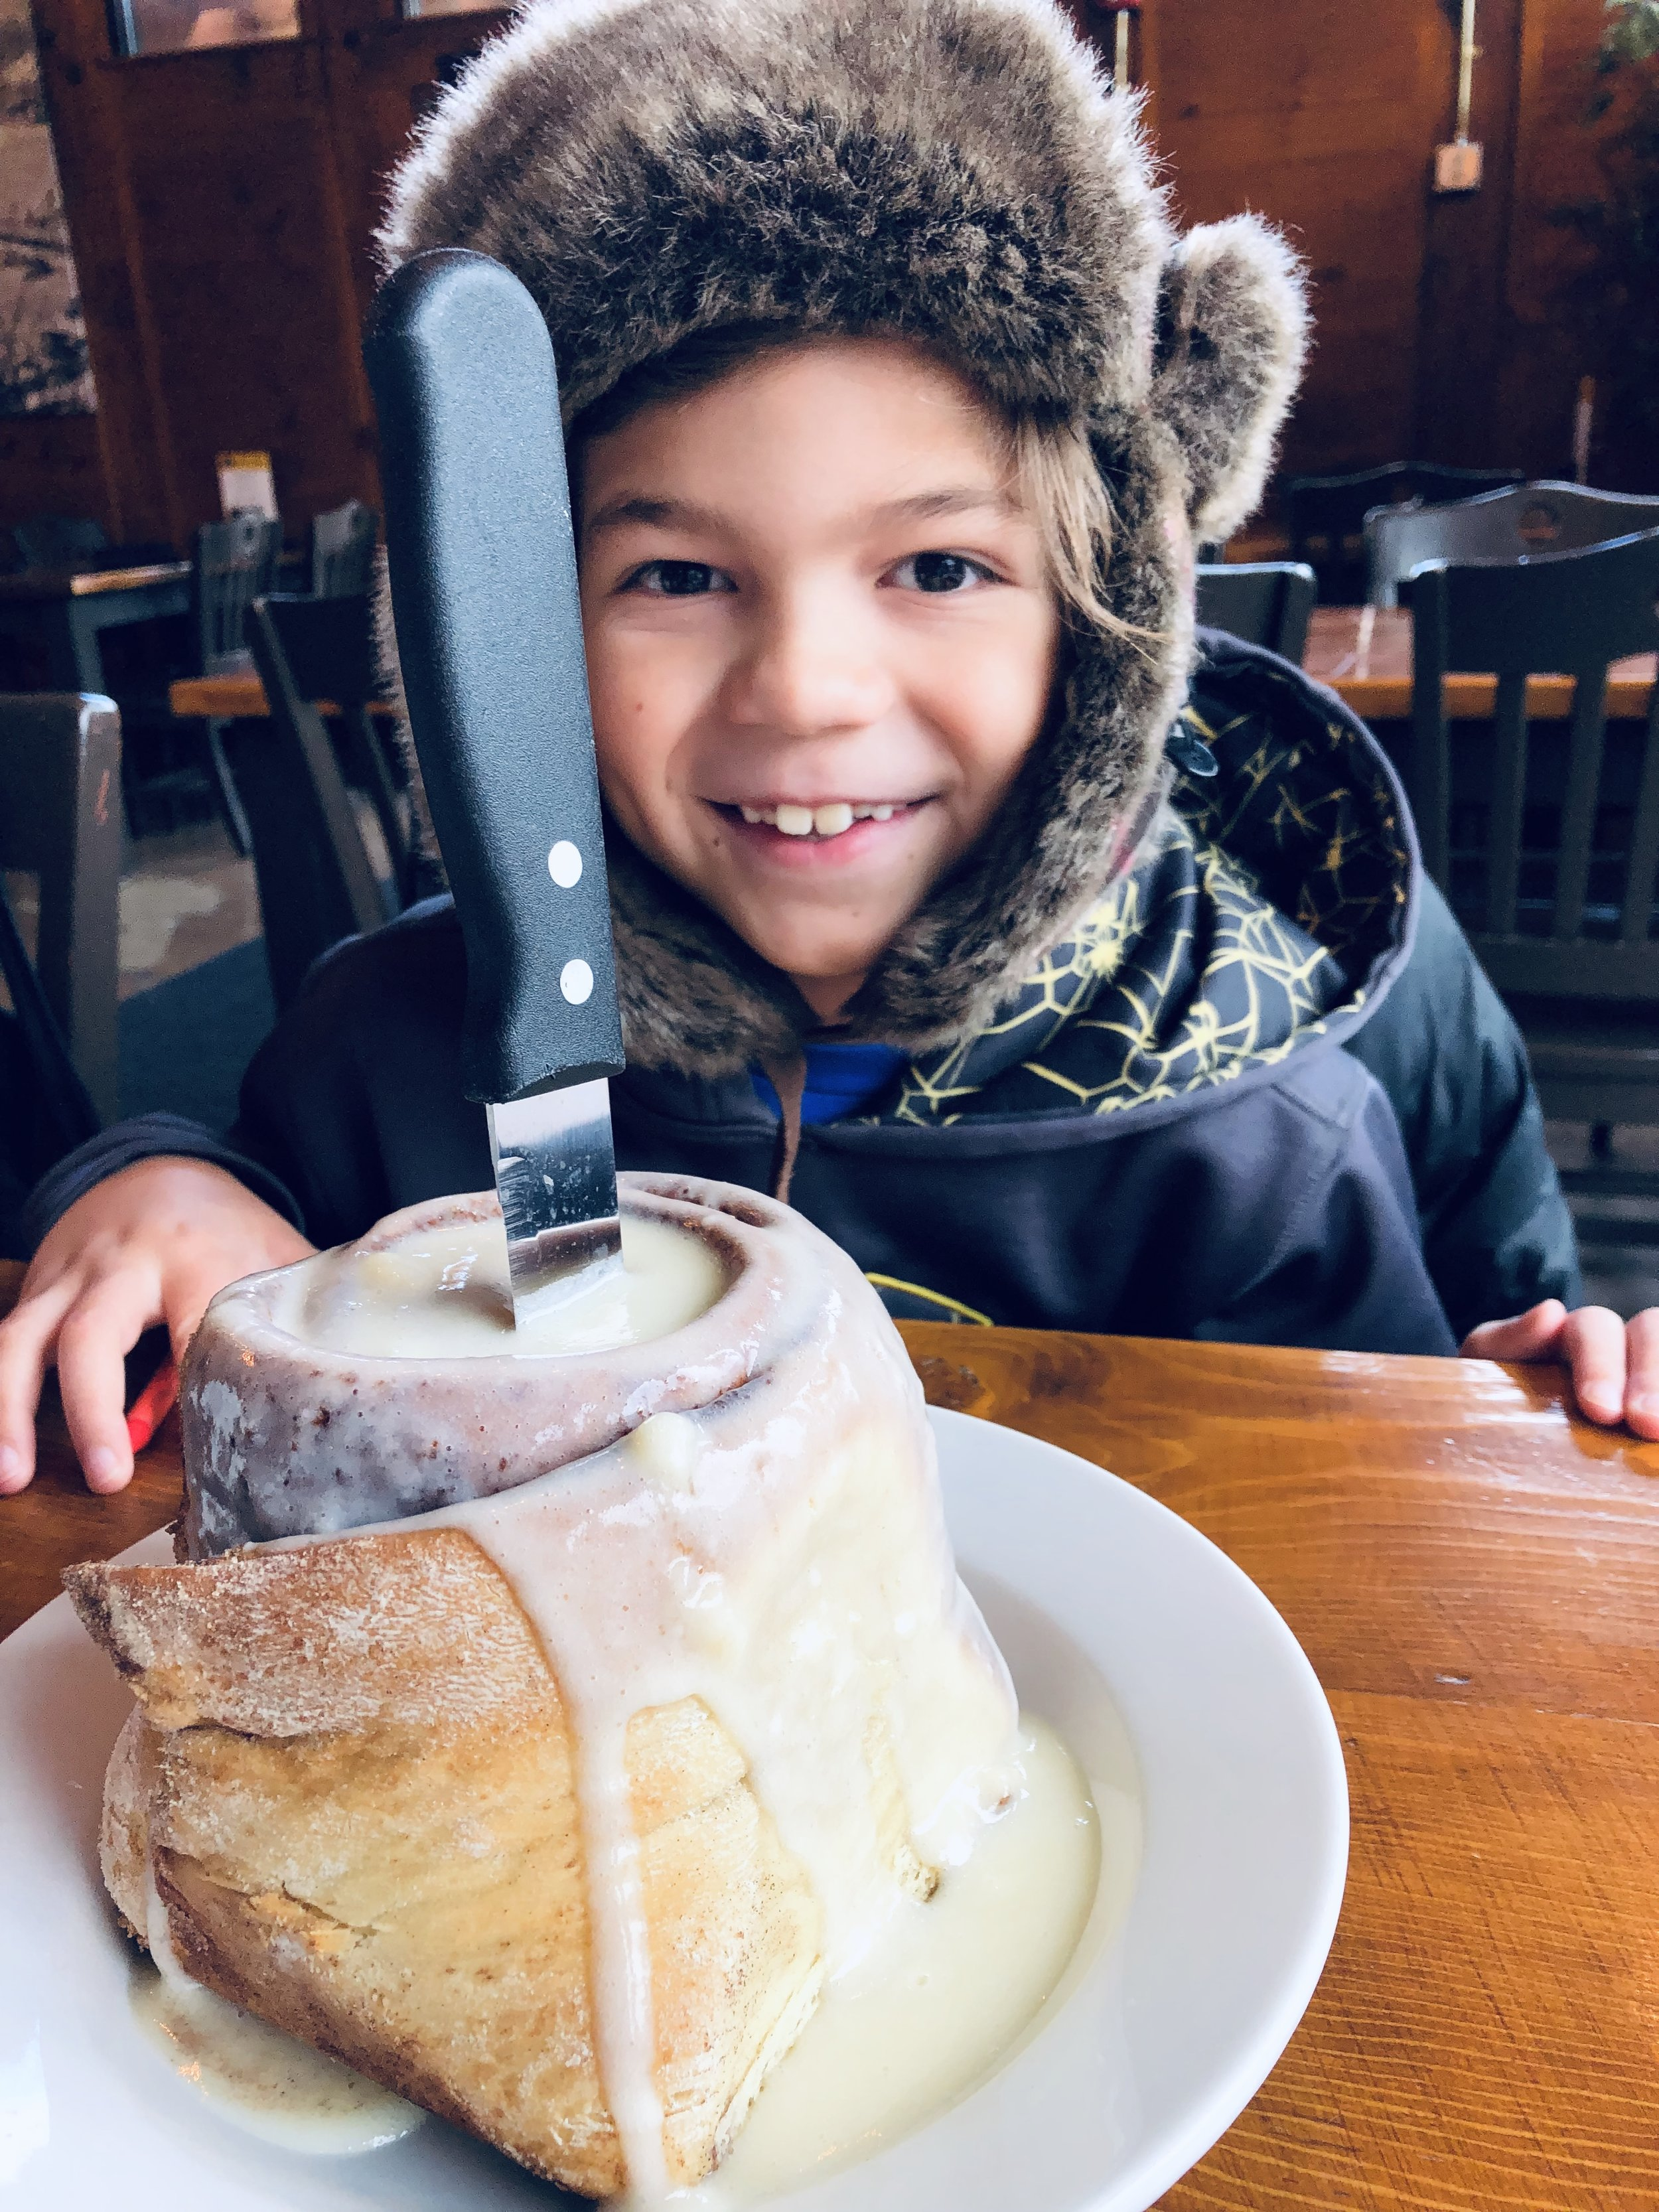 Things to do in Knoxville this Christmas, Scrambled Jake's Breakfast Company, Cinnamon roll via  Samantha Nelson Photography